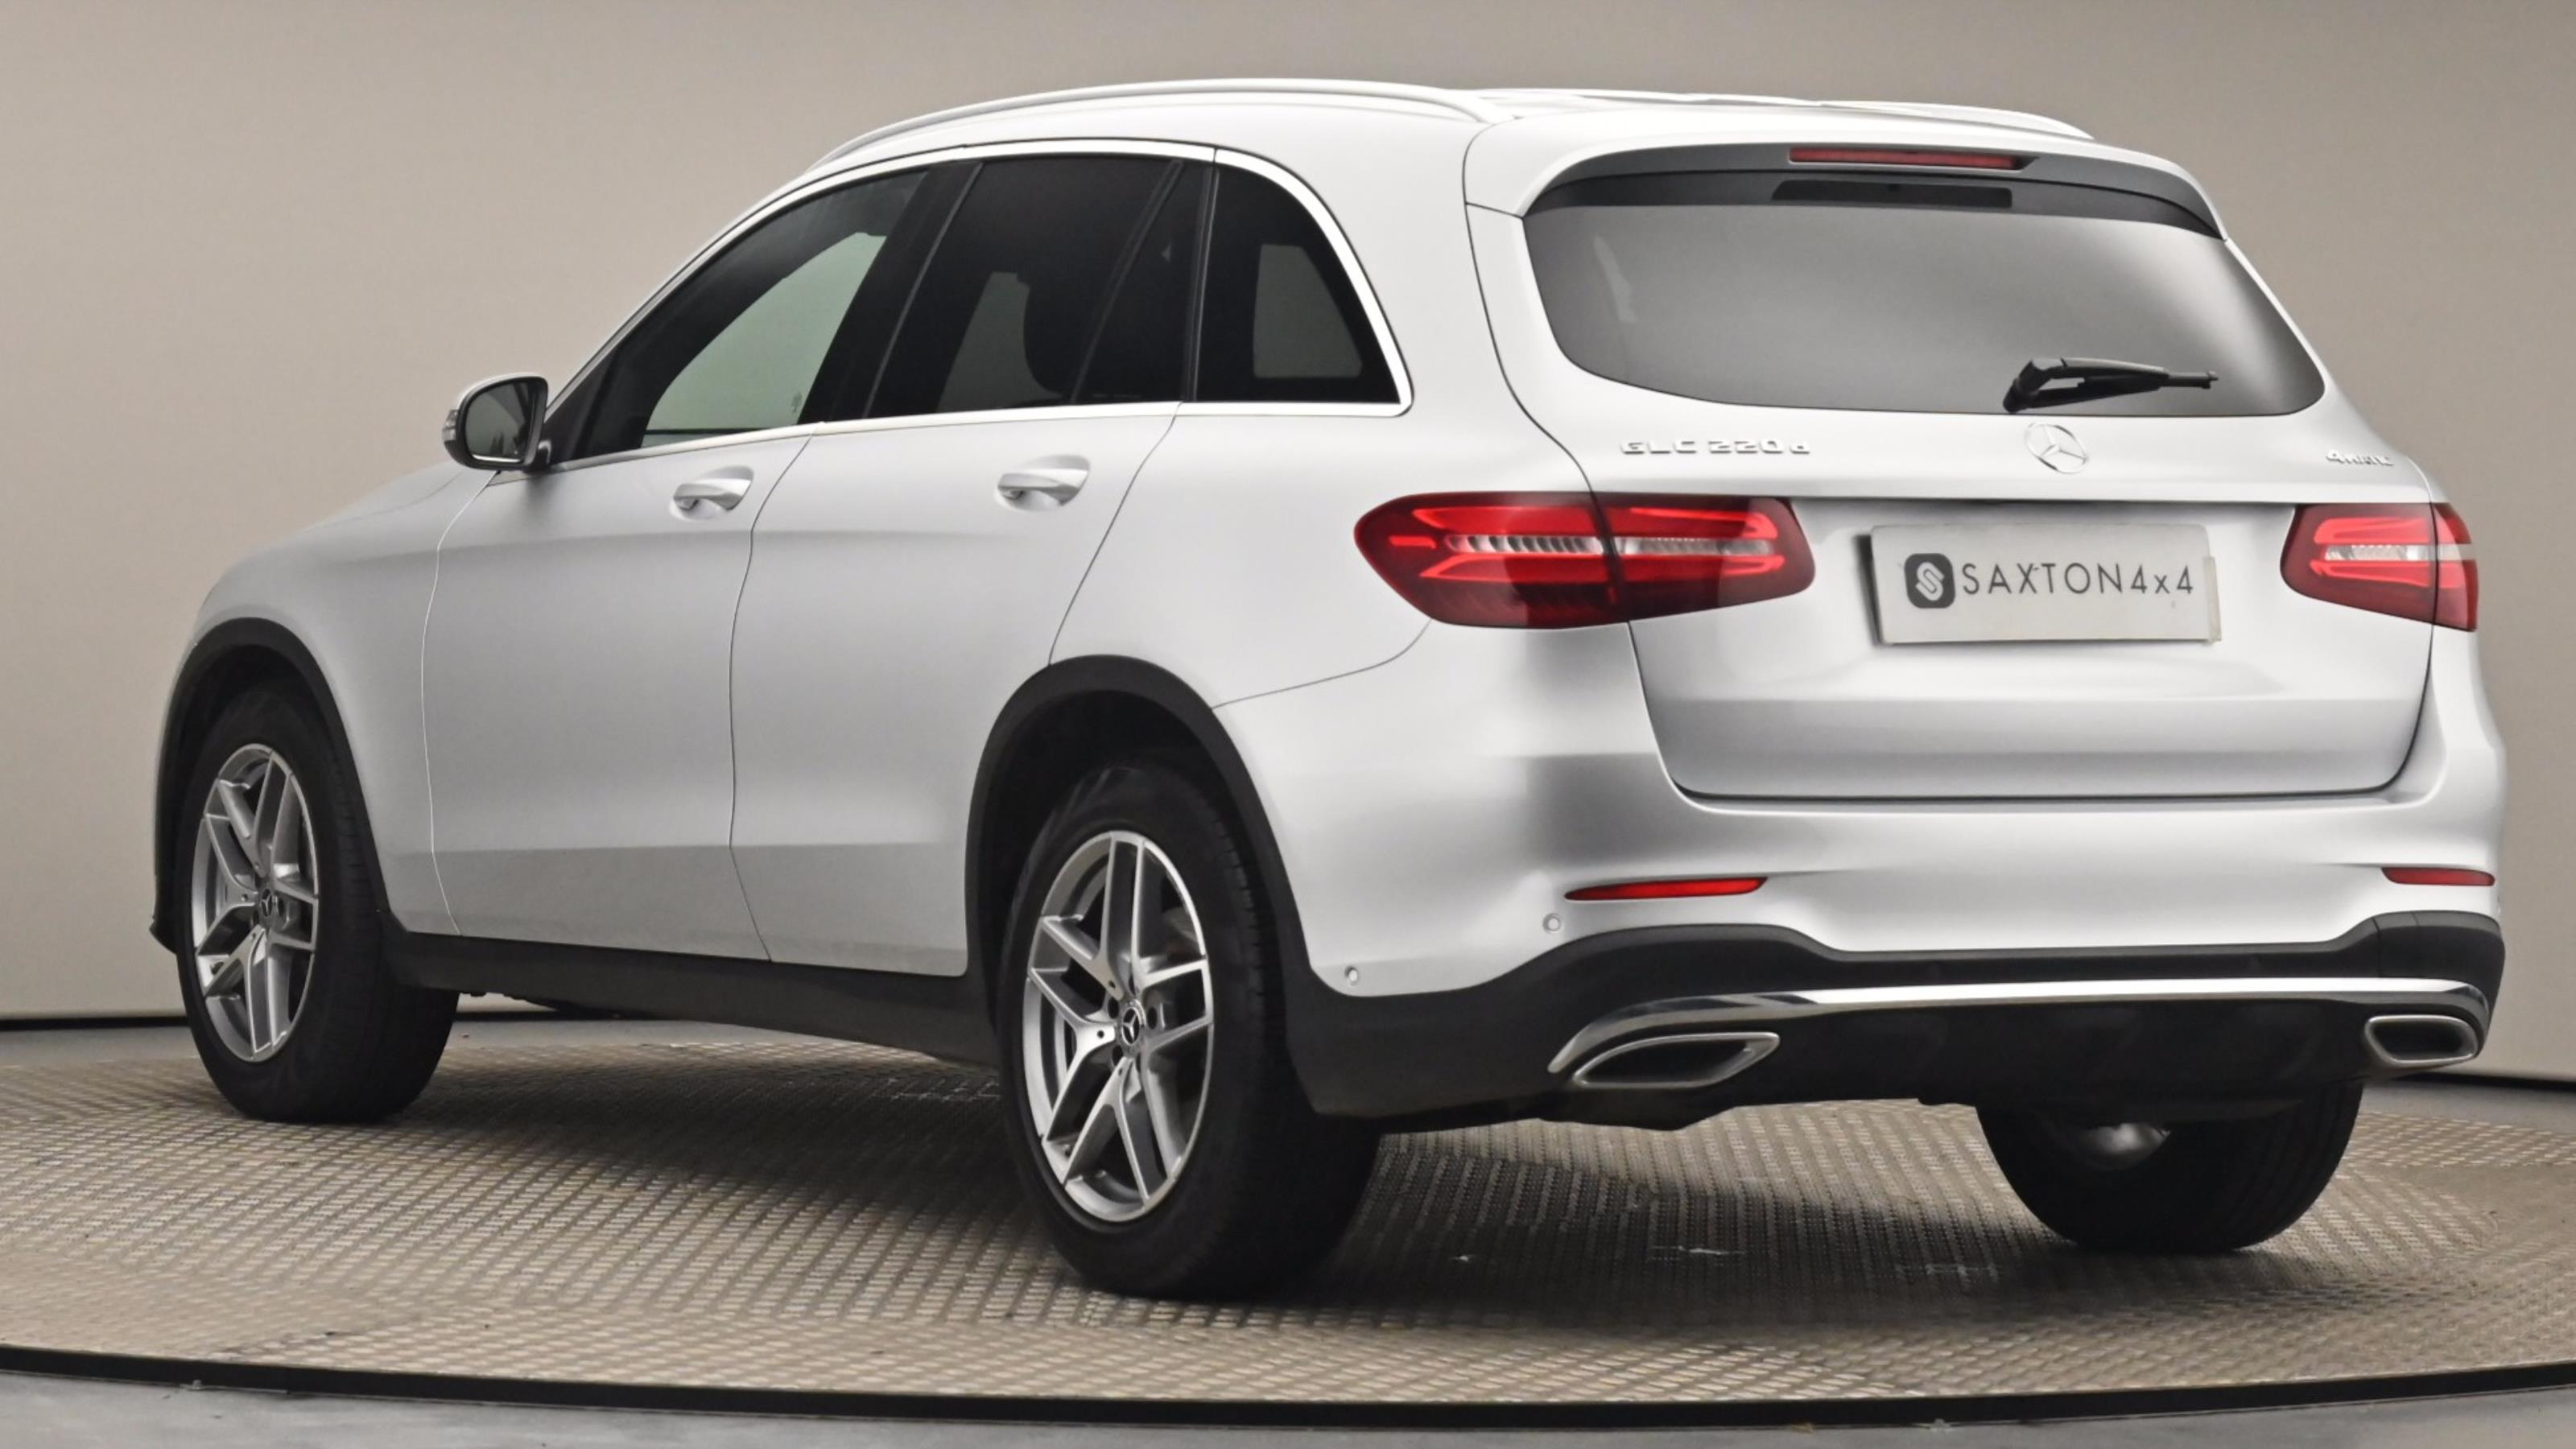 Used 17 Mercedes-Benz GLC GLC 220d 4Matic AMG Line 5dr 9G-Tronic Silver at Saxton4x4